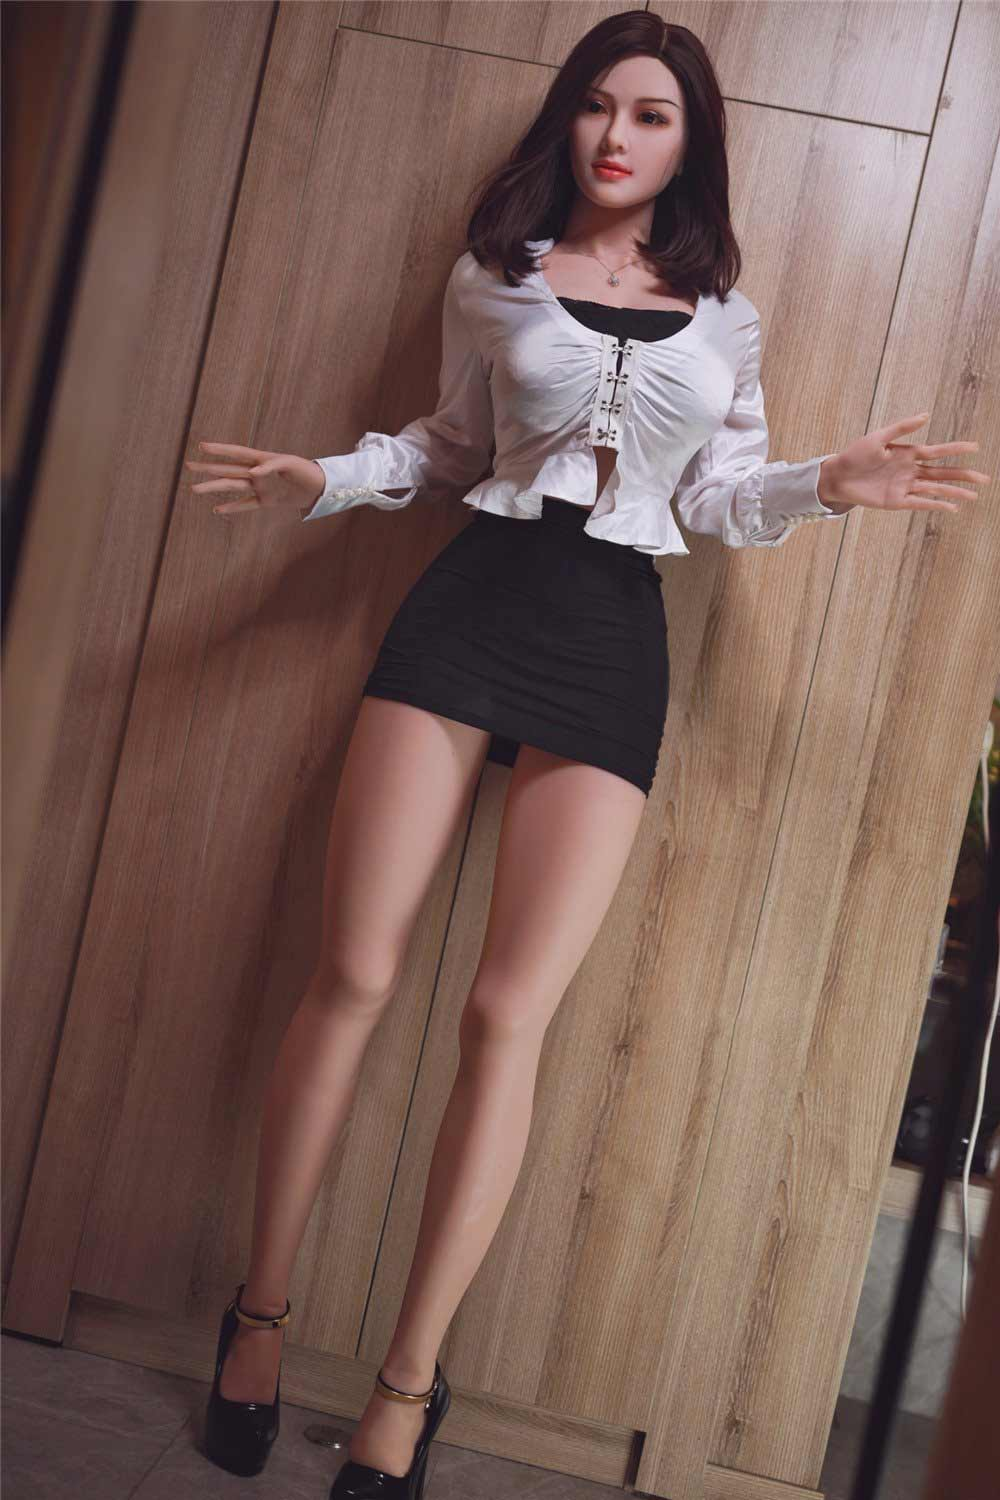 Sex doll with open hands